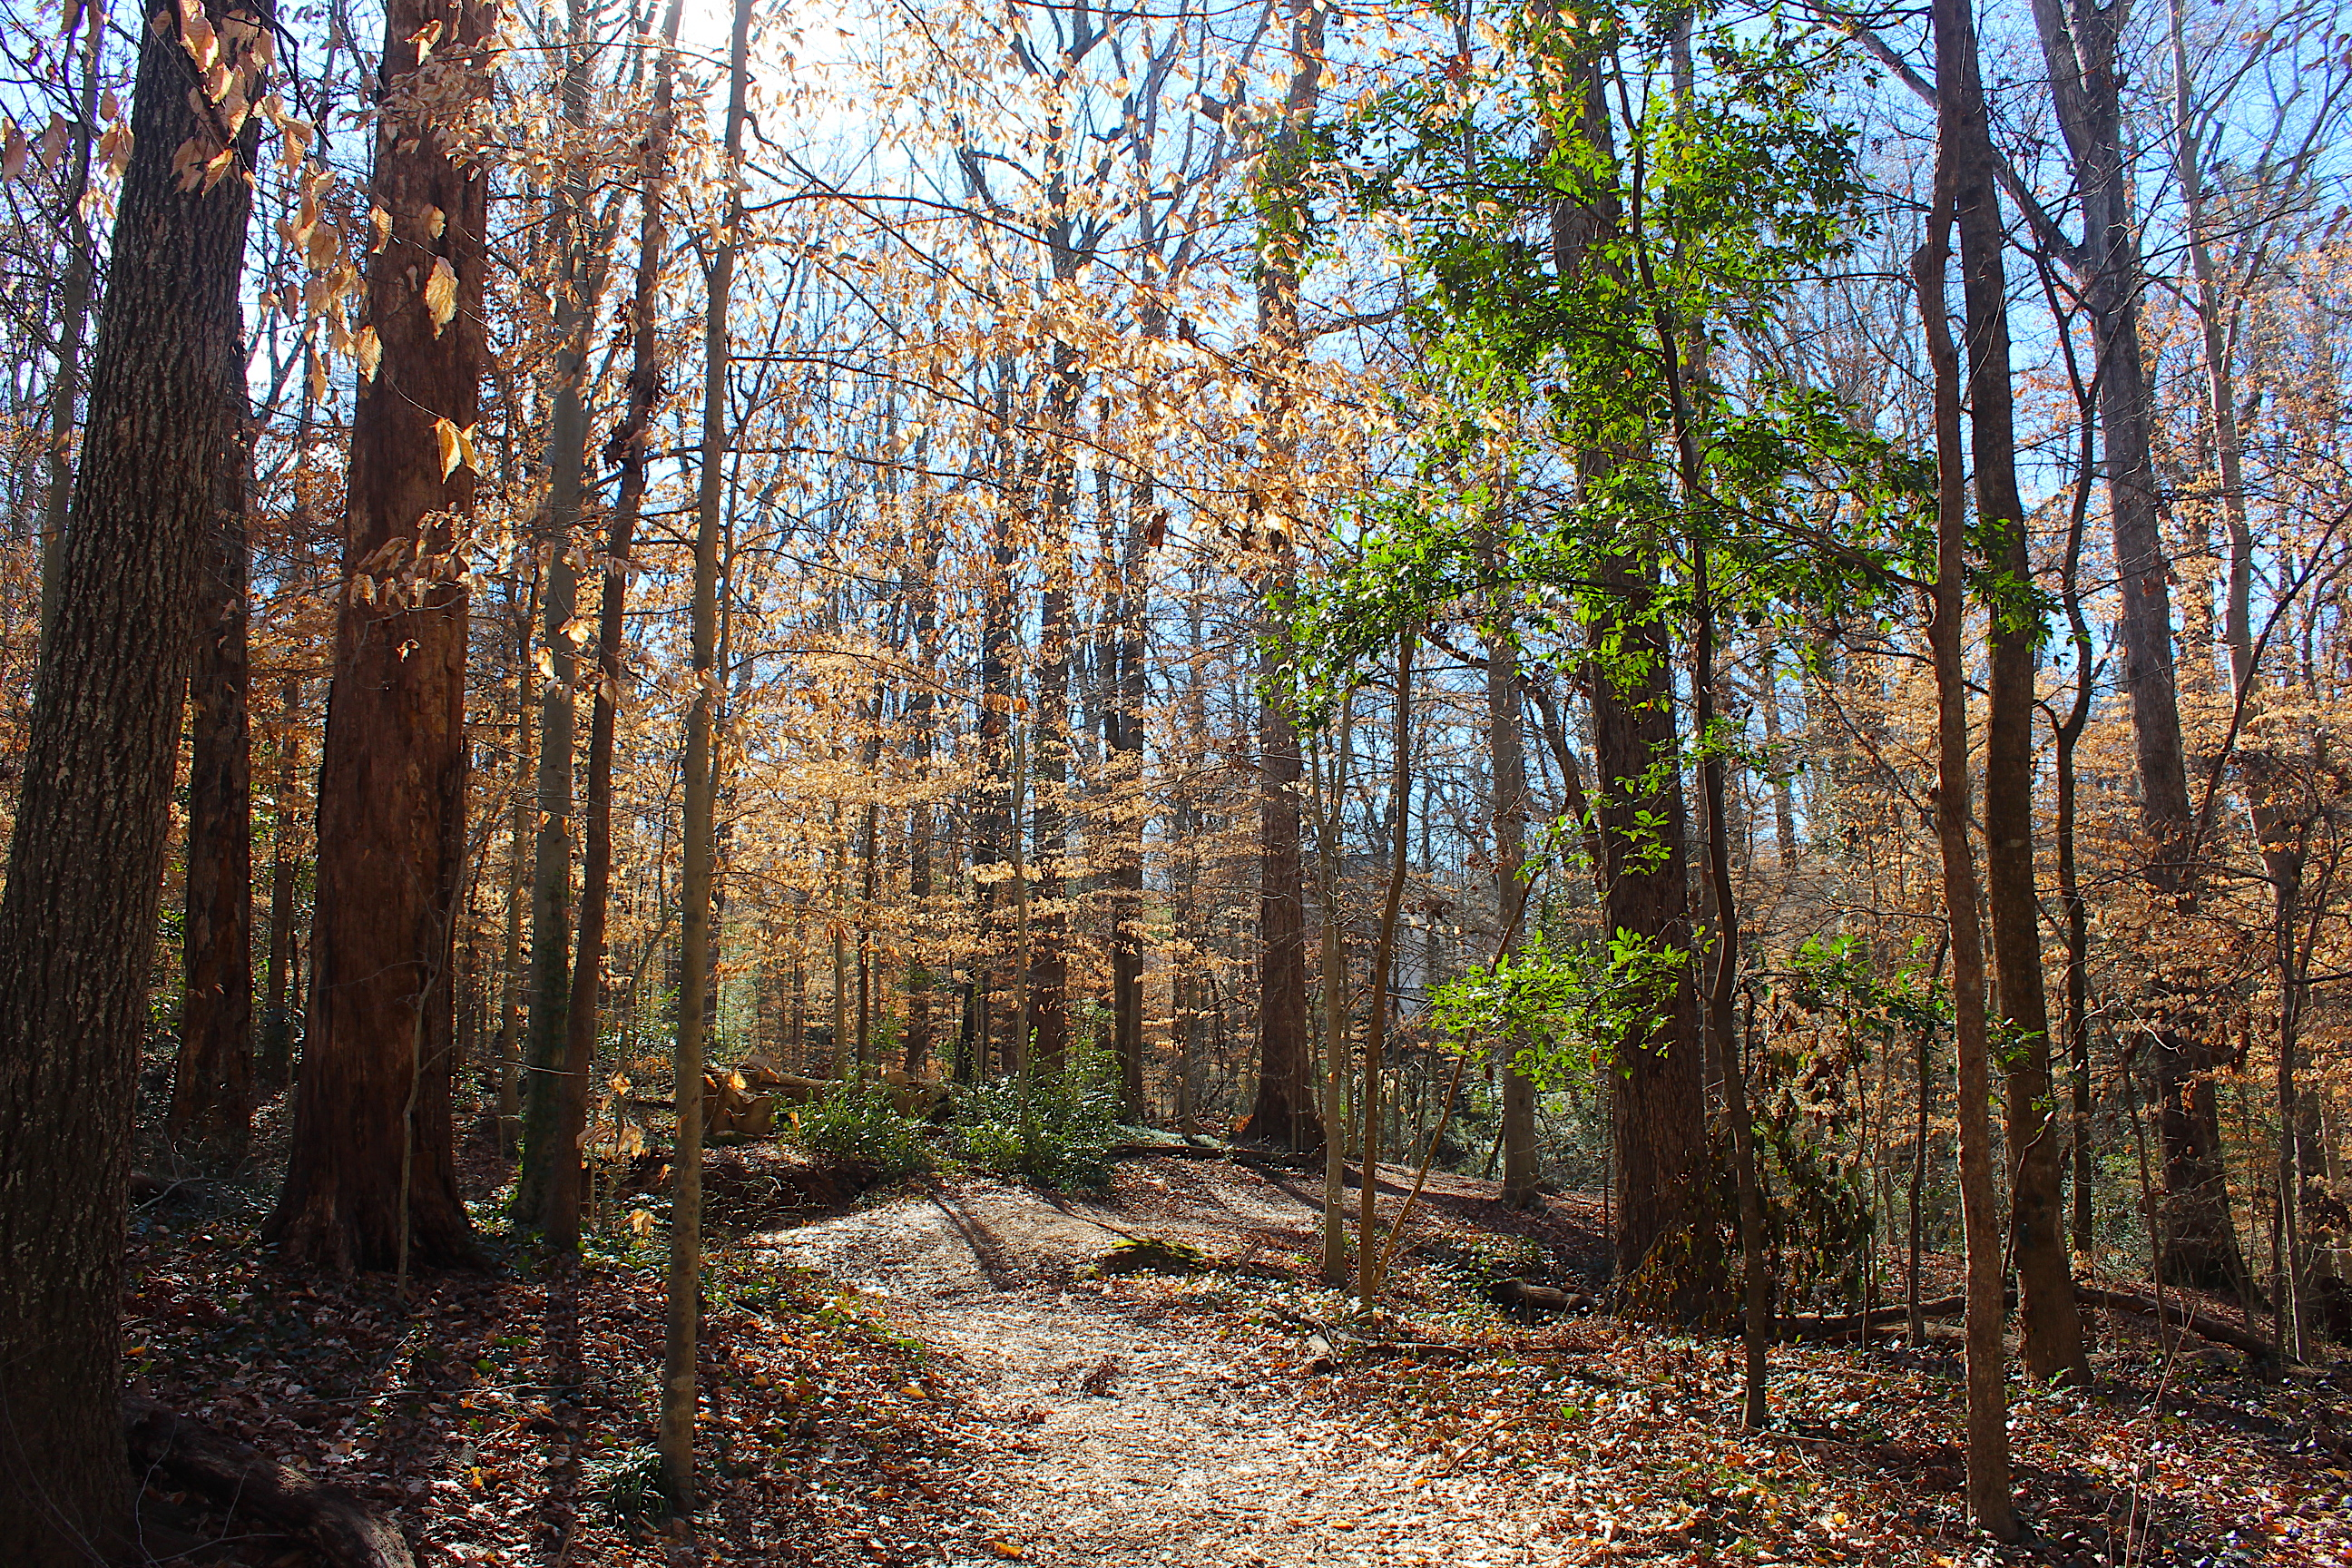 If documents are required for the sale of your property or for any other reason, please contact resales@damctx.com. Secrets Of The Winter Woods A Walk In Frazer Forest With Ecoaddendum